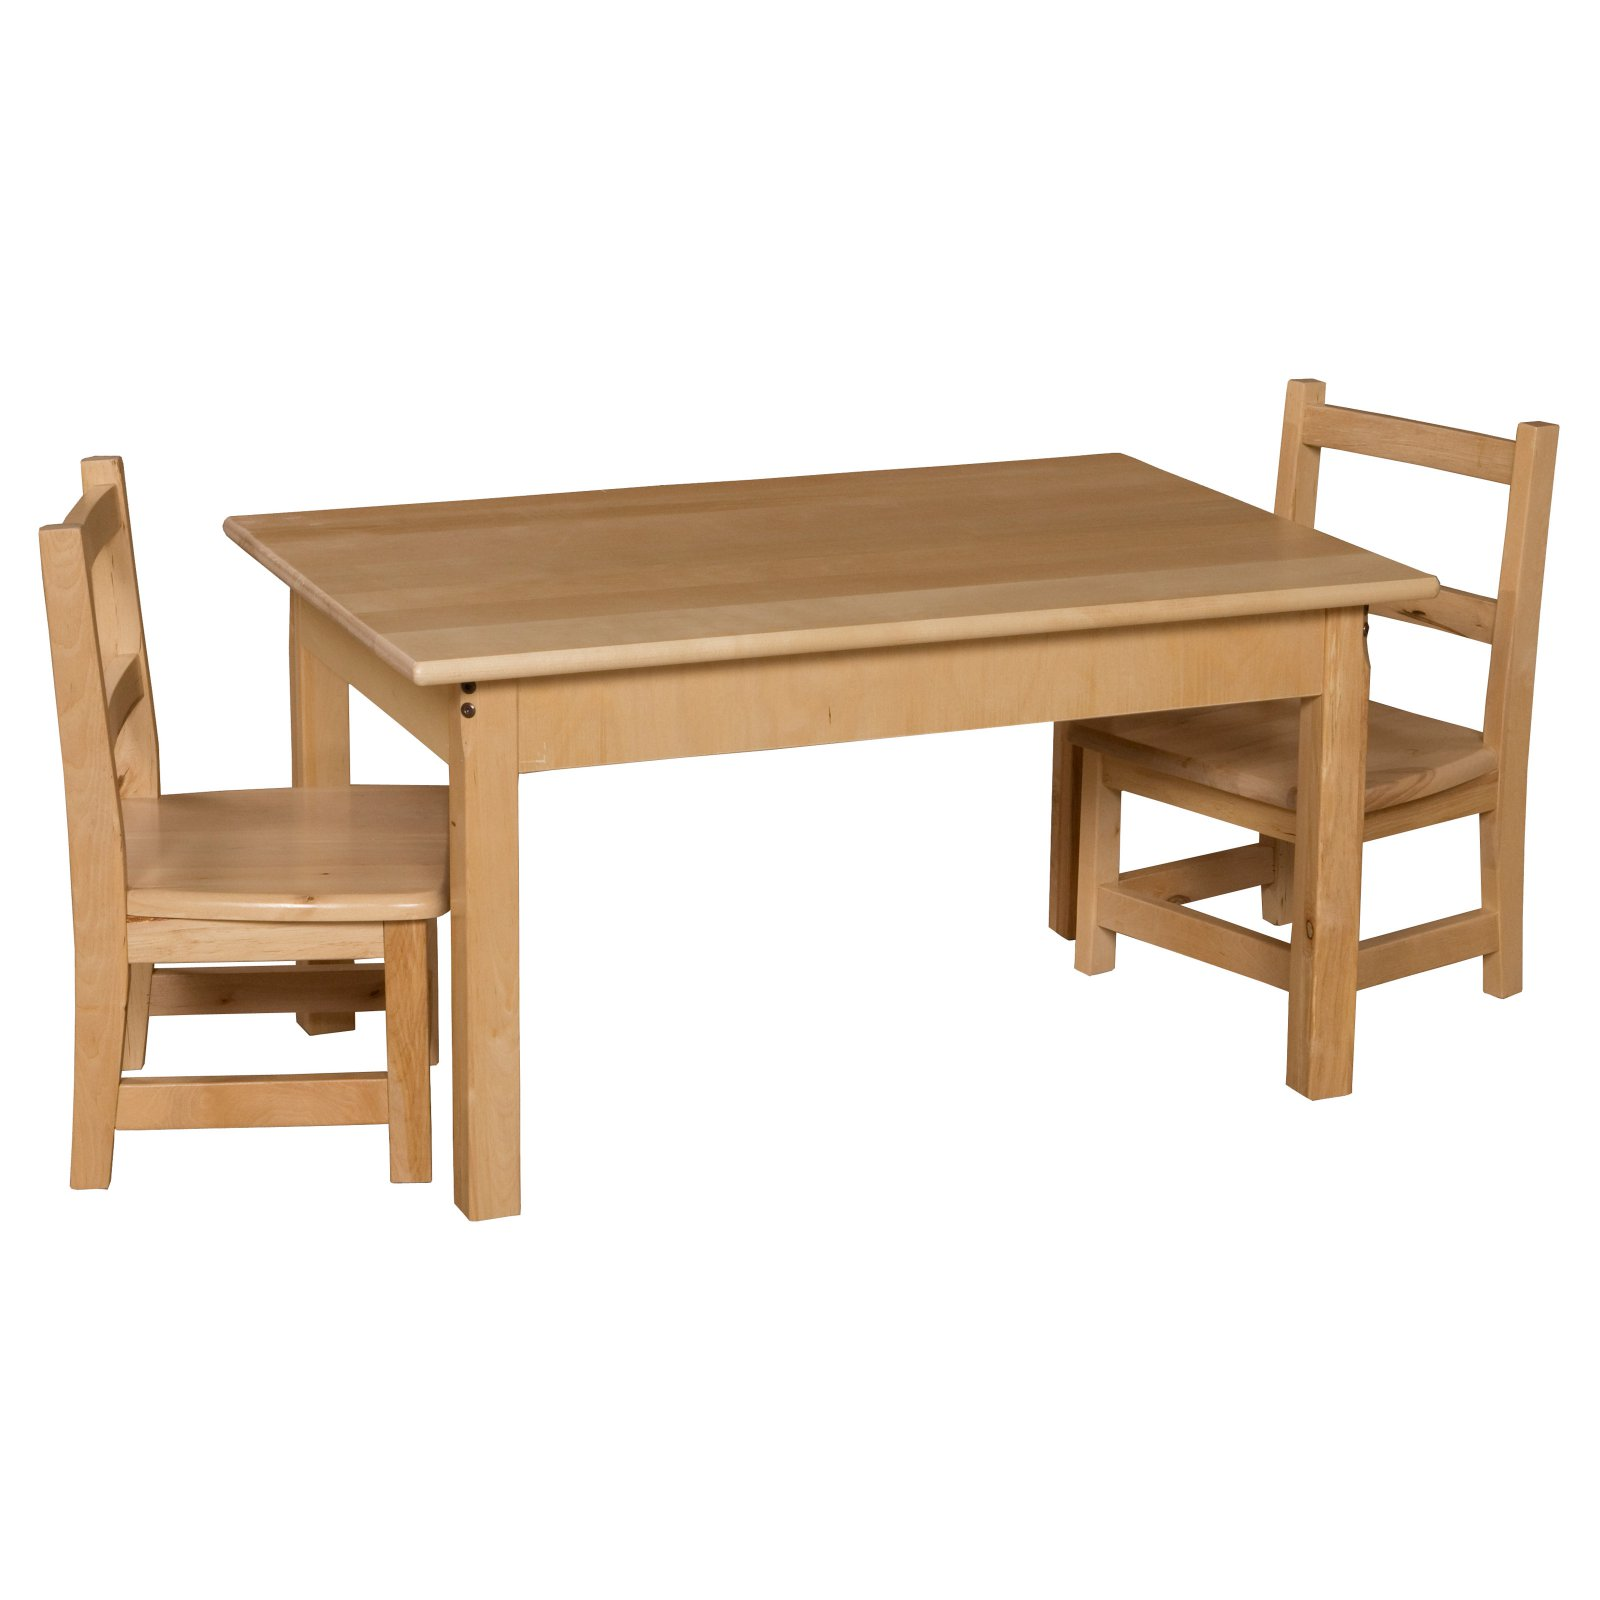 Wood Designs Rectangle Table and Chair Set